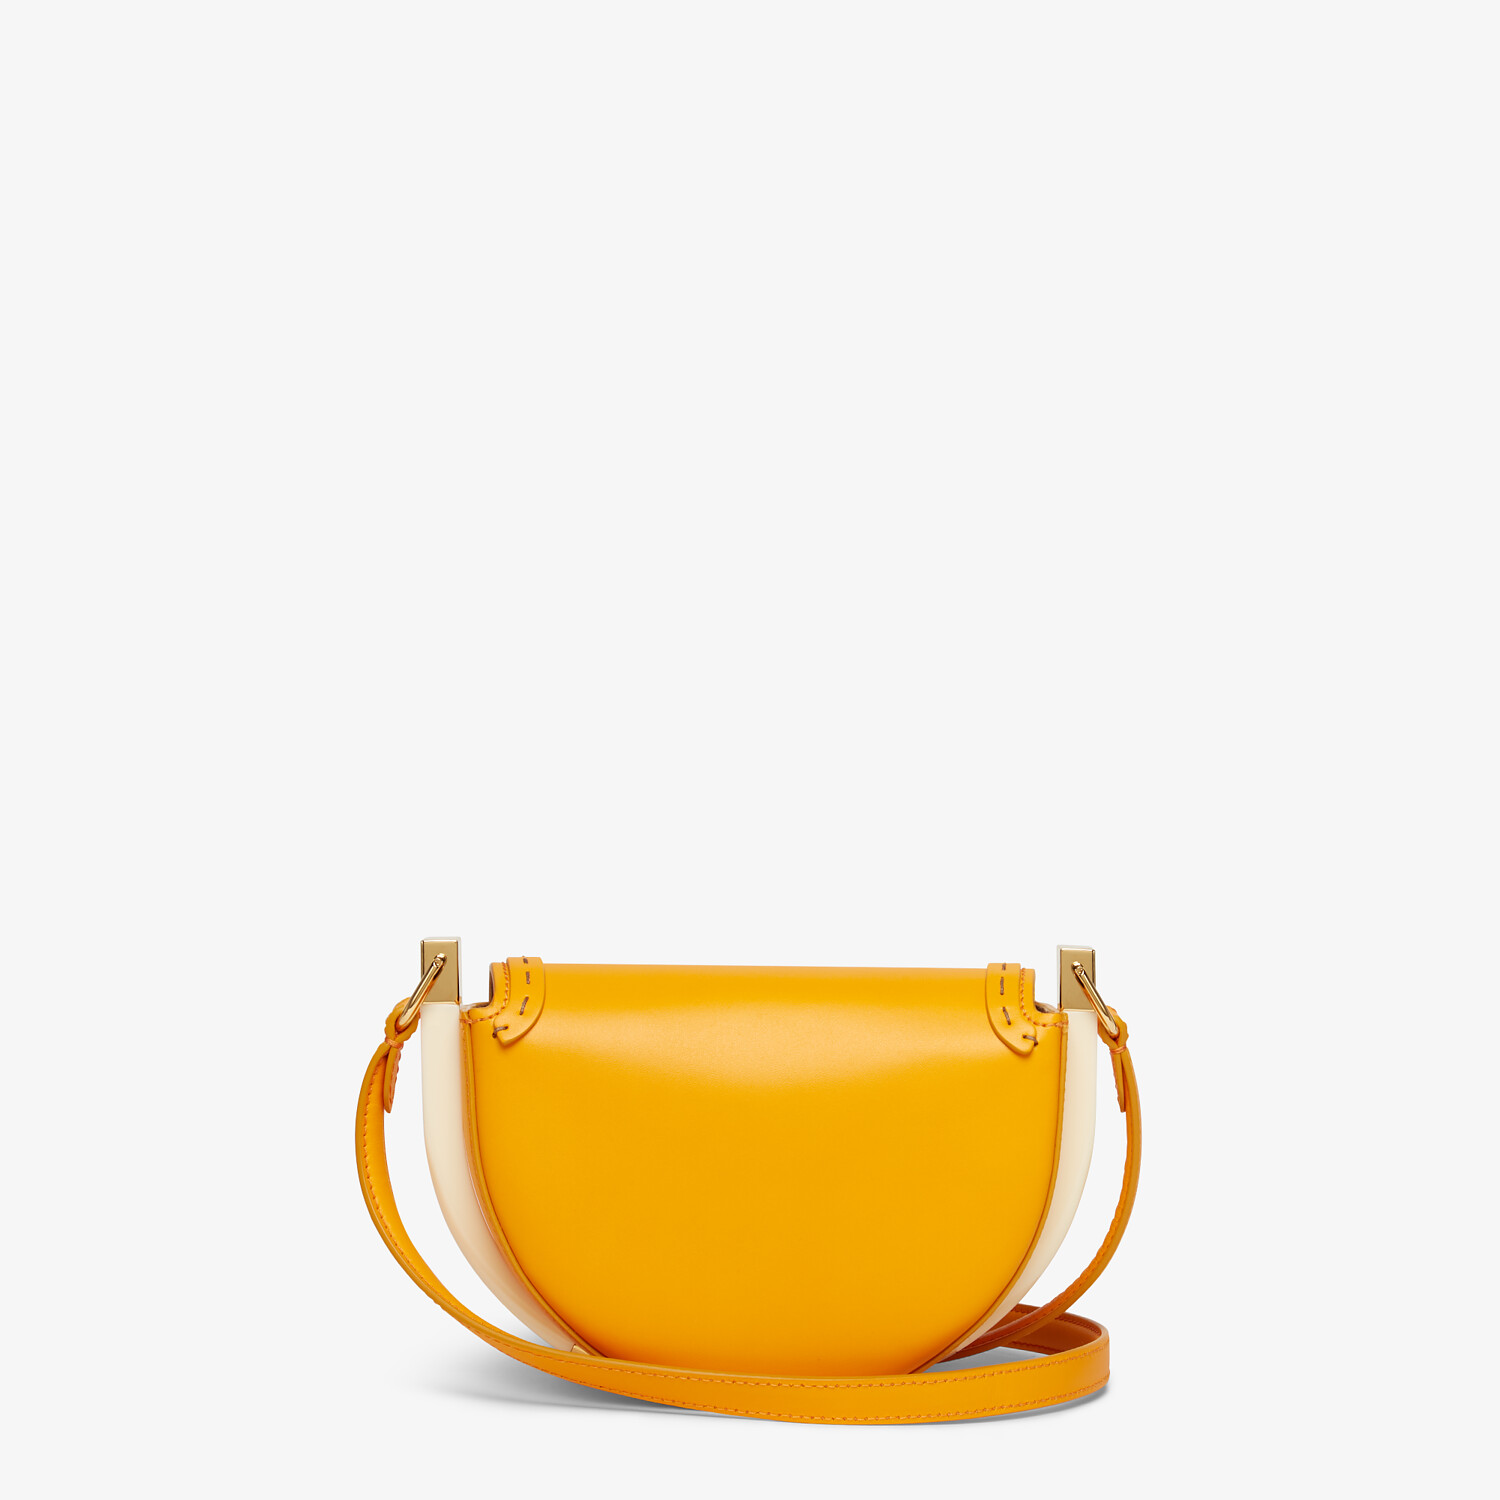 FENDI MOONLIGHT - Orange leather bag - view 4 detail